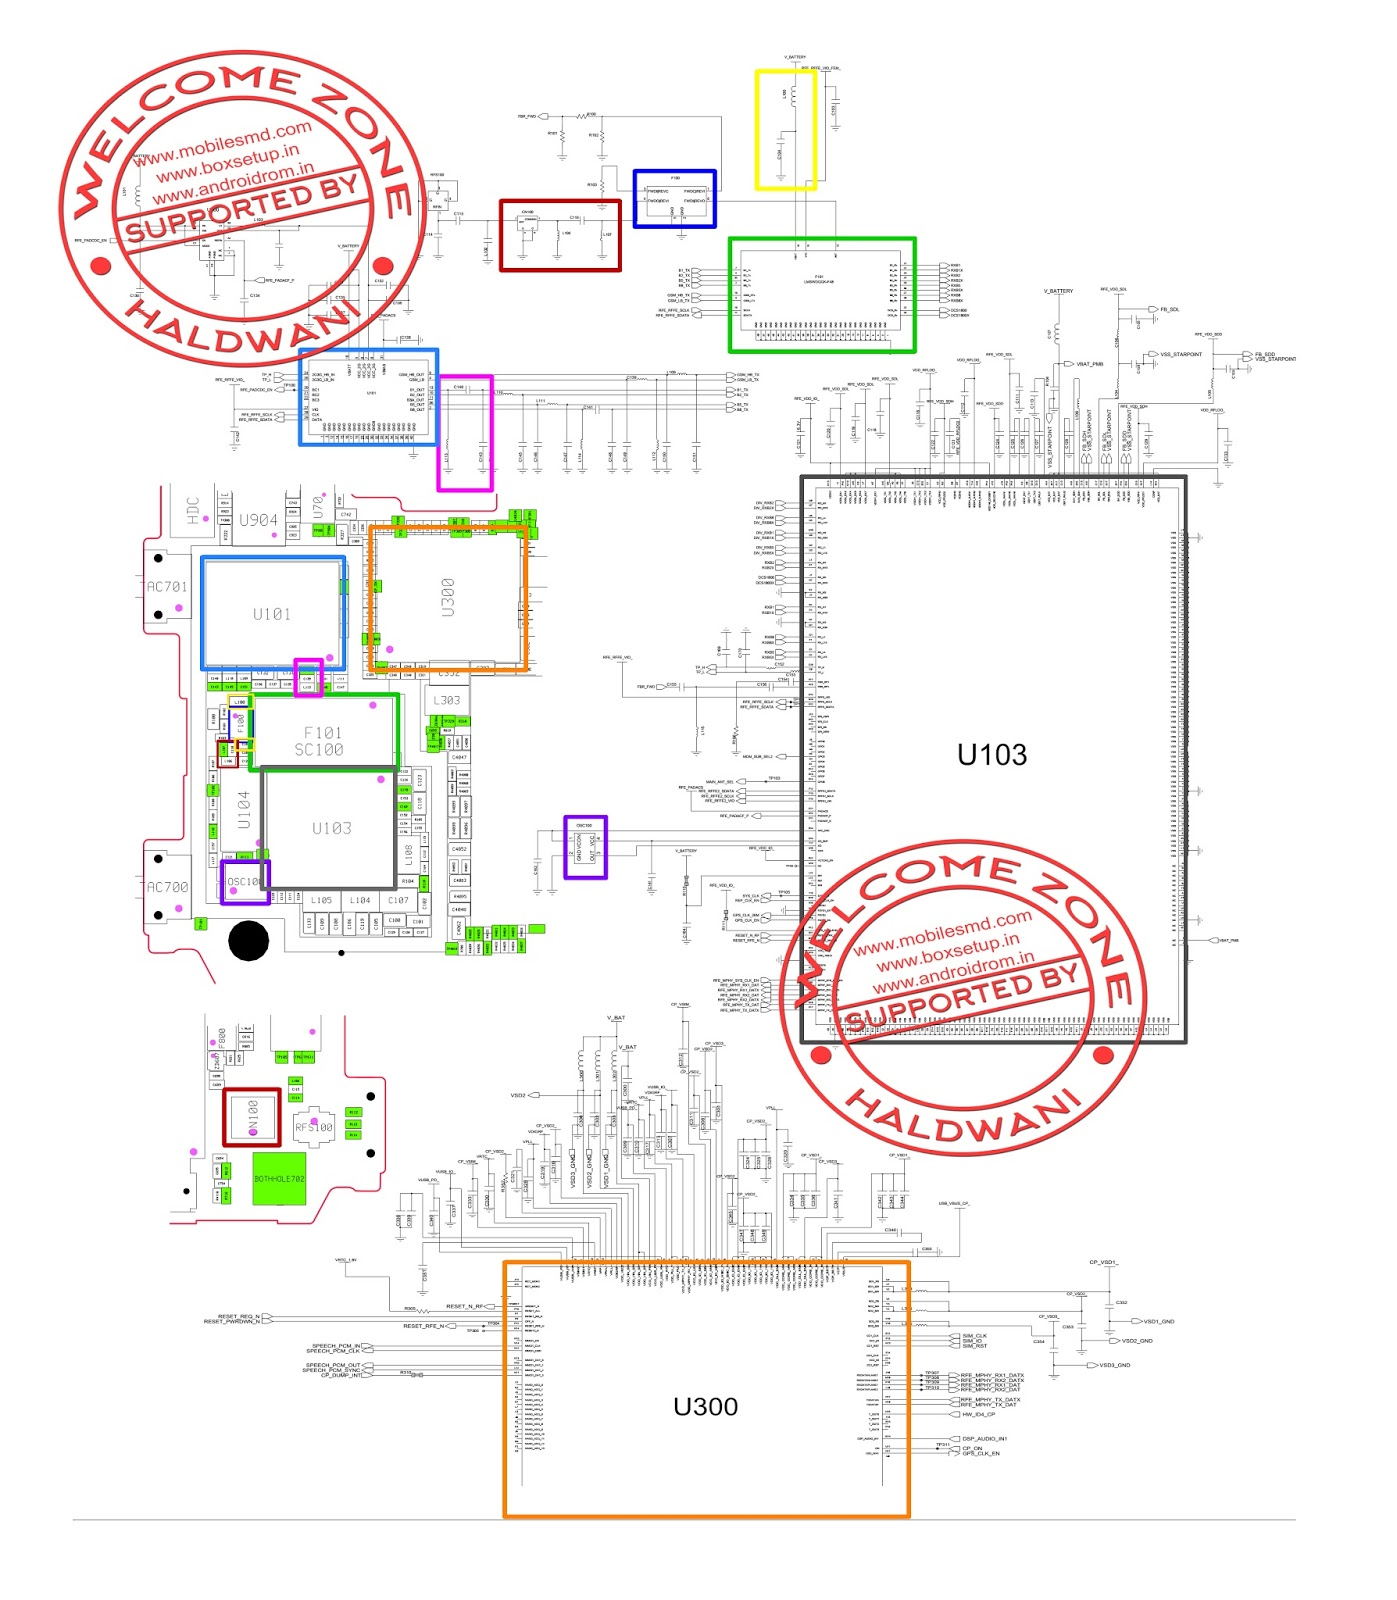 medium resolution of emg hsh wiring diagram otax vlx91 for hsh pick up diagram single coil pickup wiring diagram hsh stratocaster wiring diagram